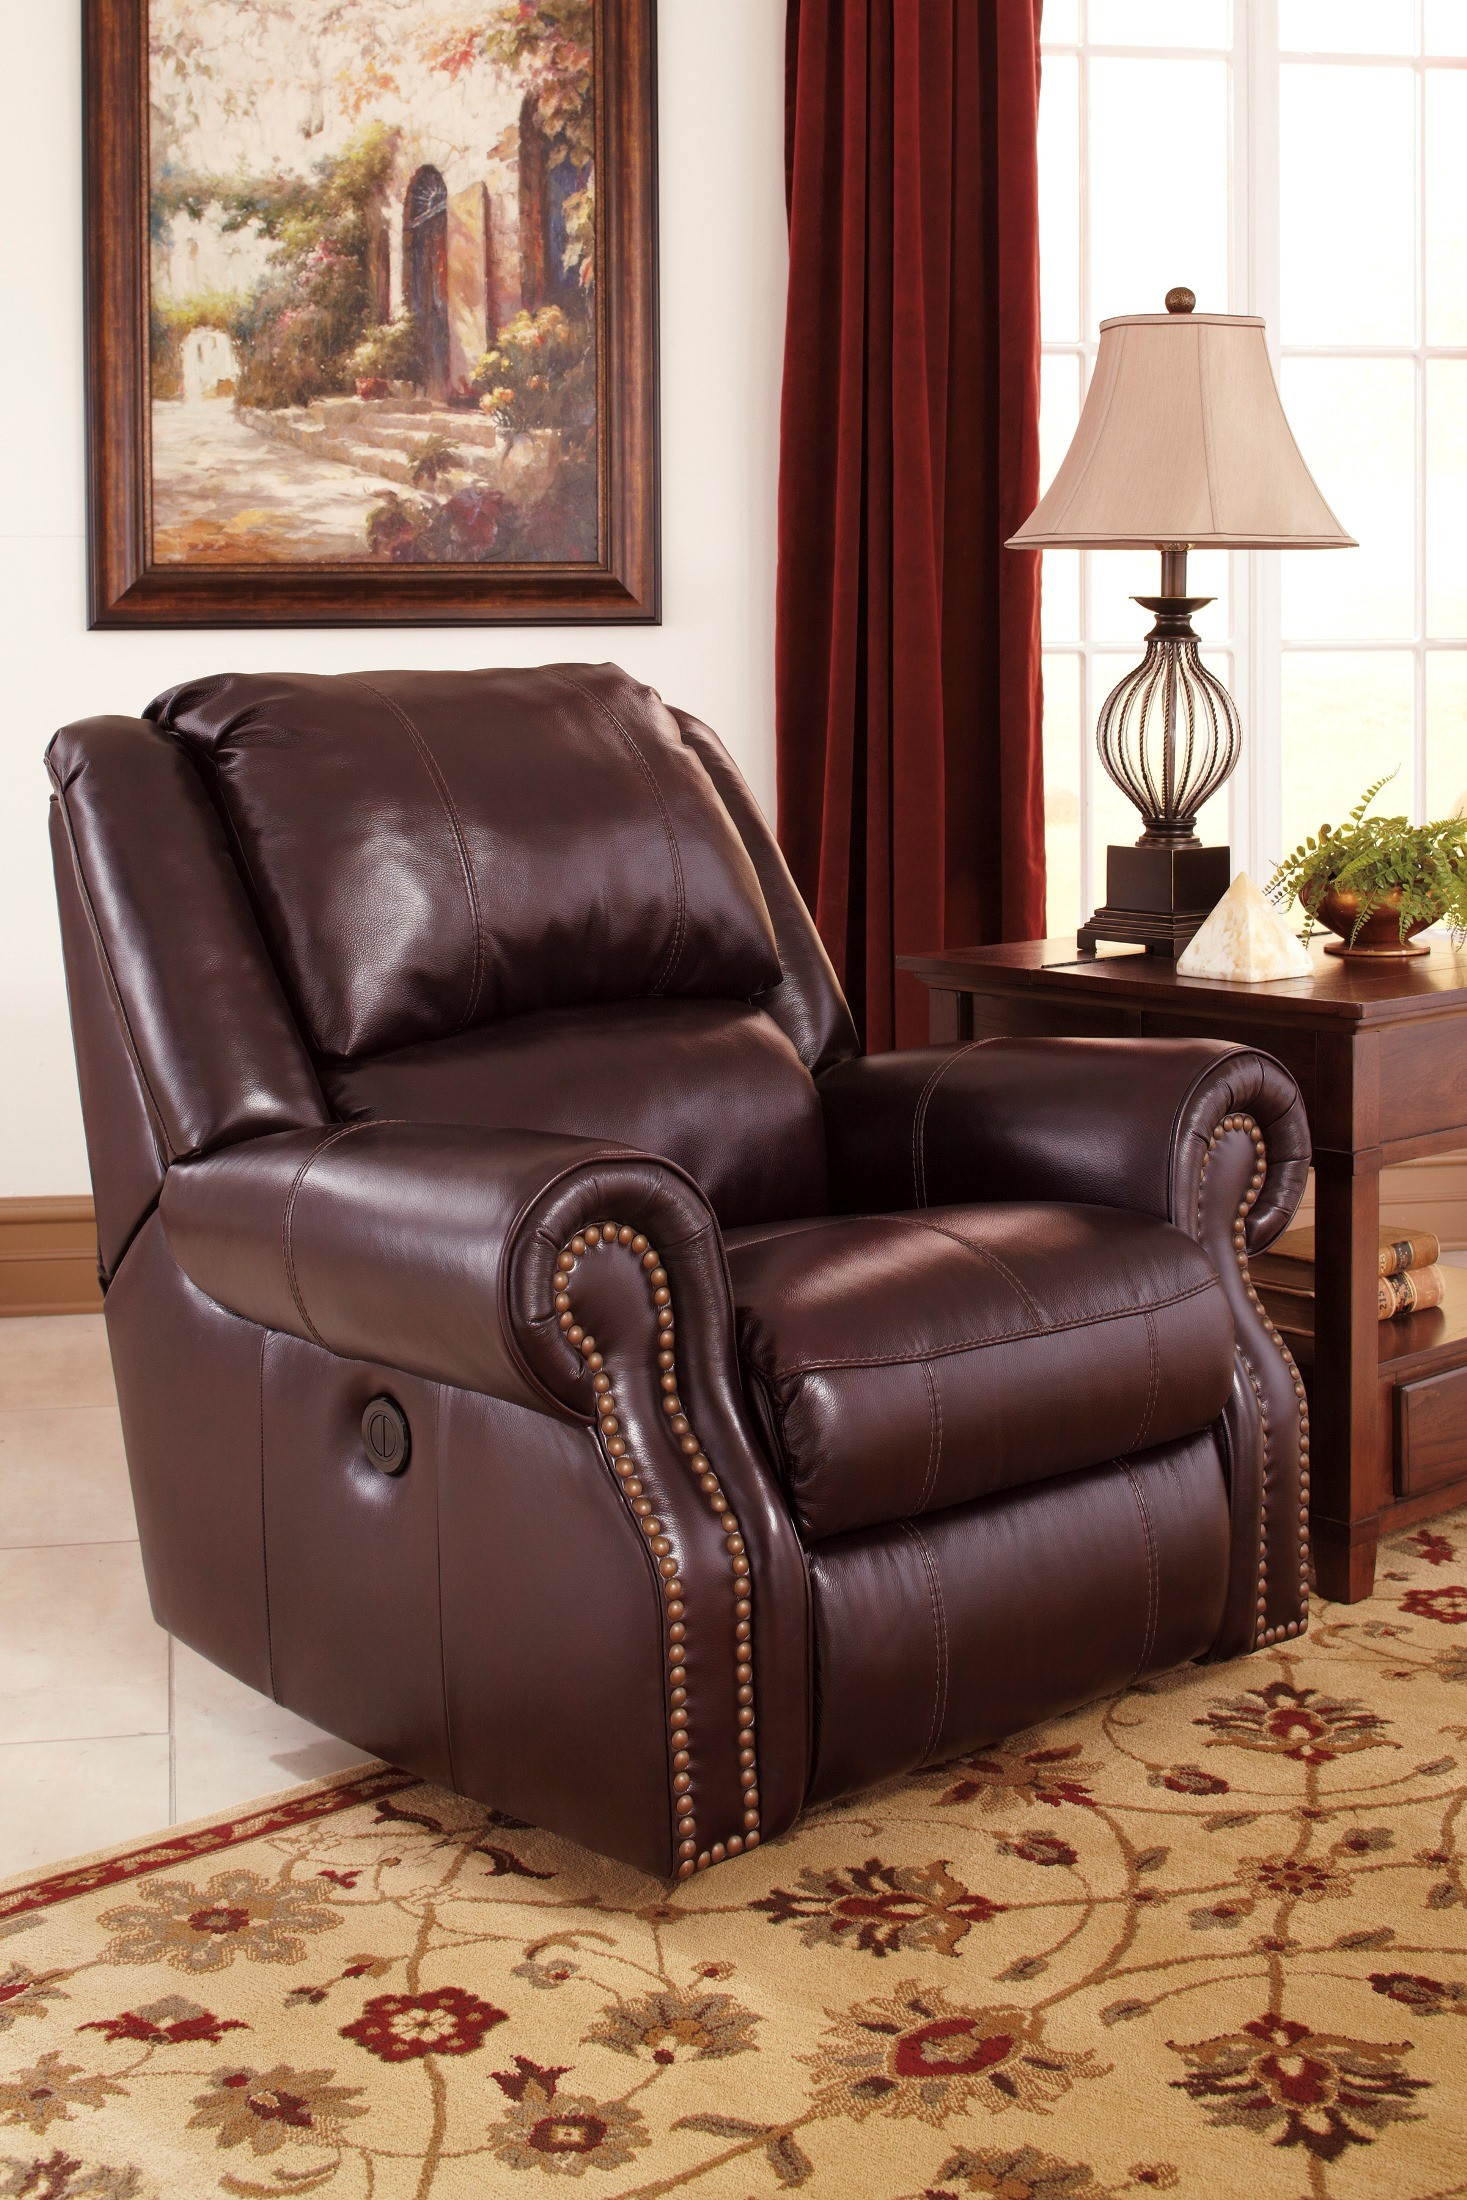 Walworth blackcherry power reclining living room set from Reclining living room furniture